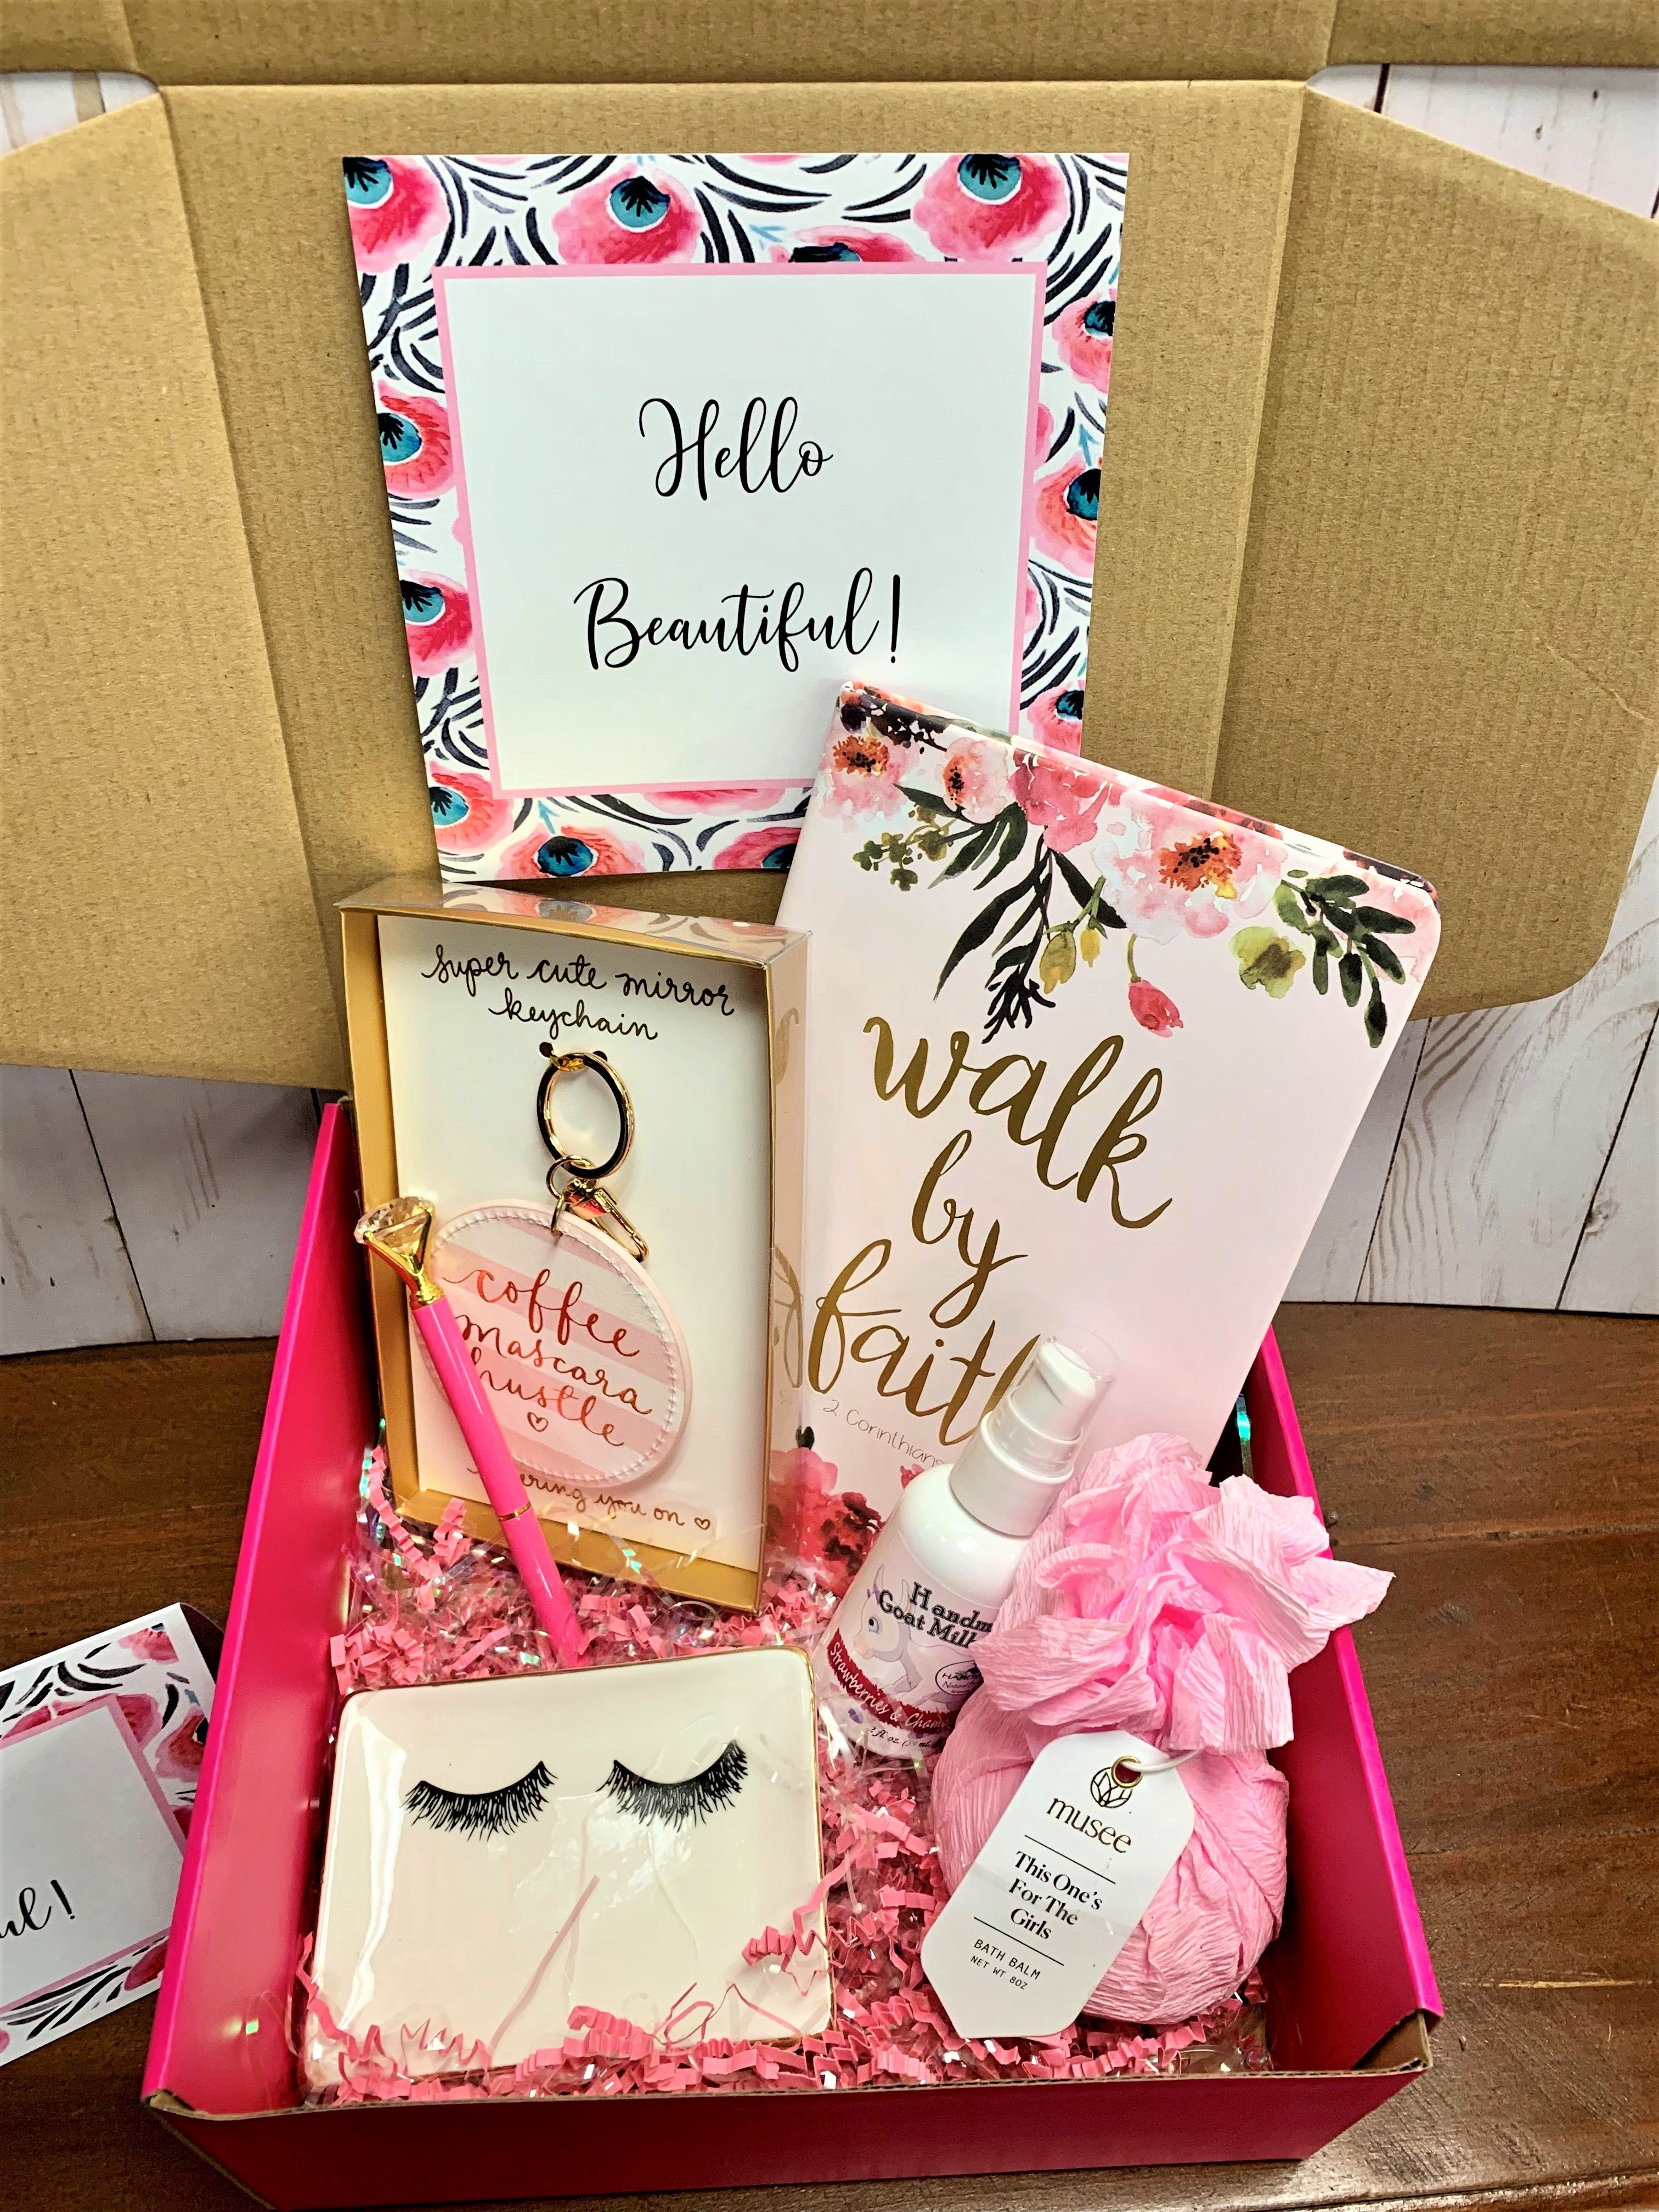 Big surprise boutique gift box gifts surprise box gift